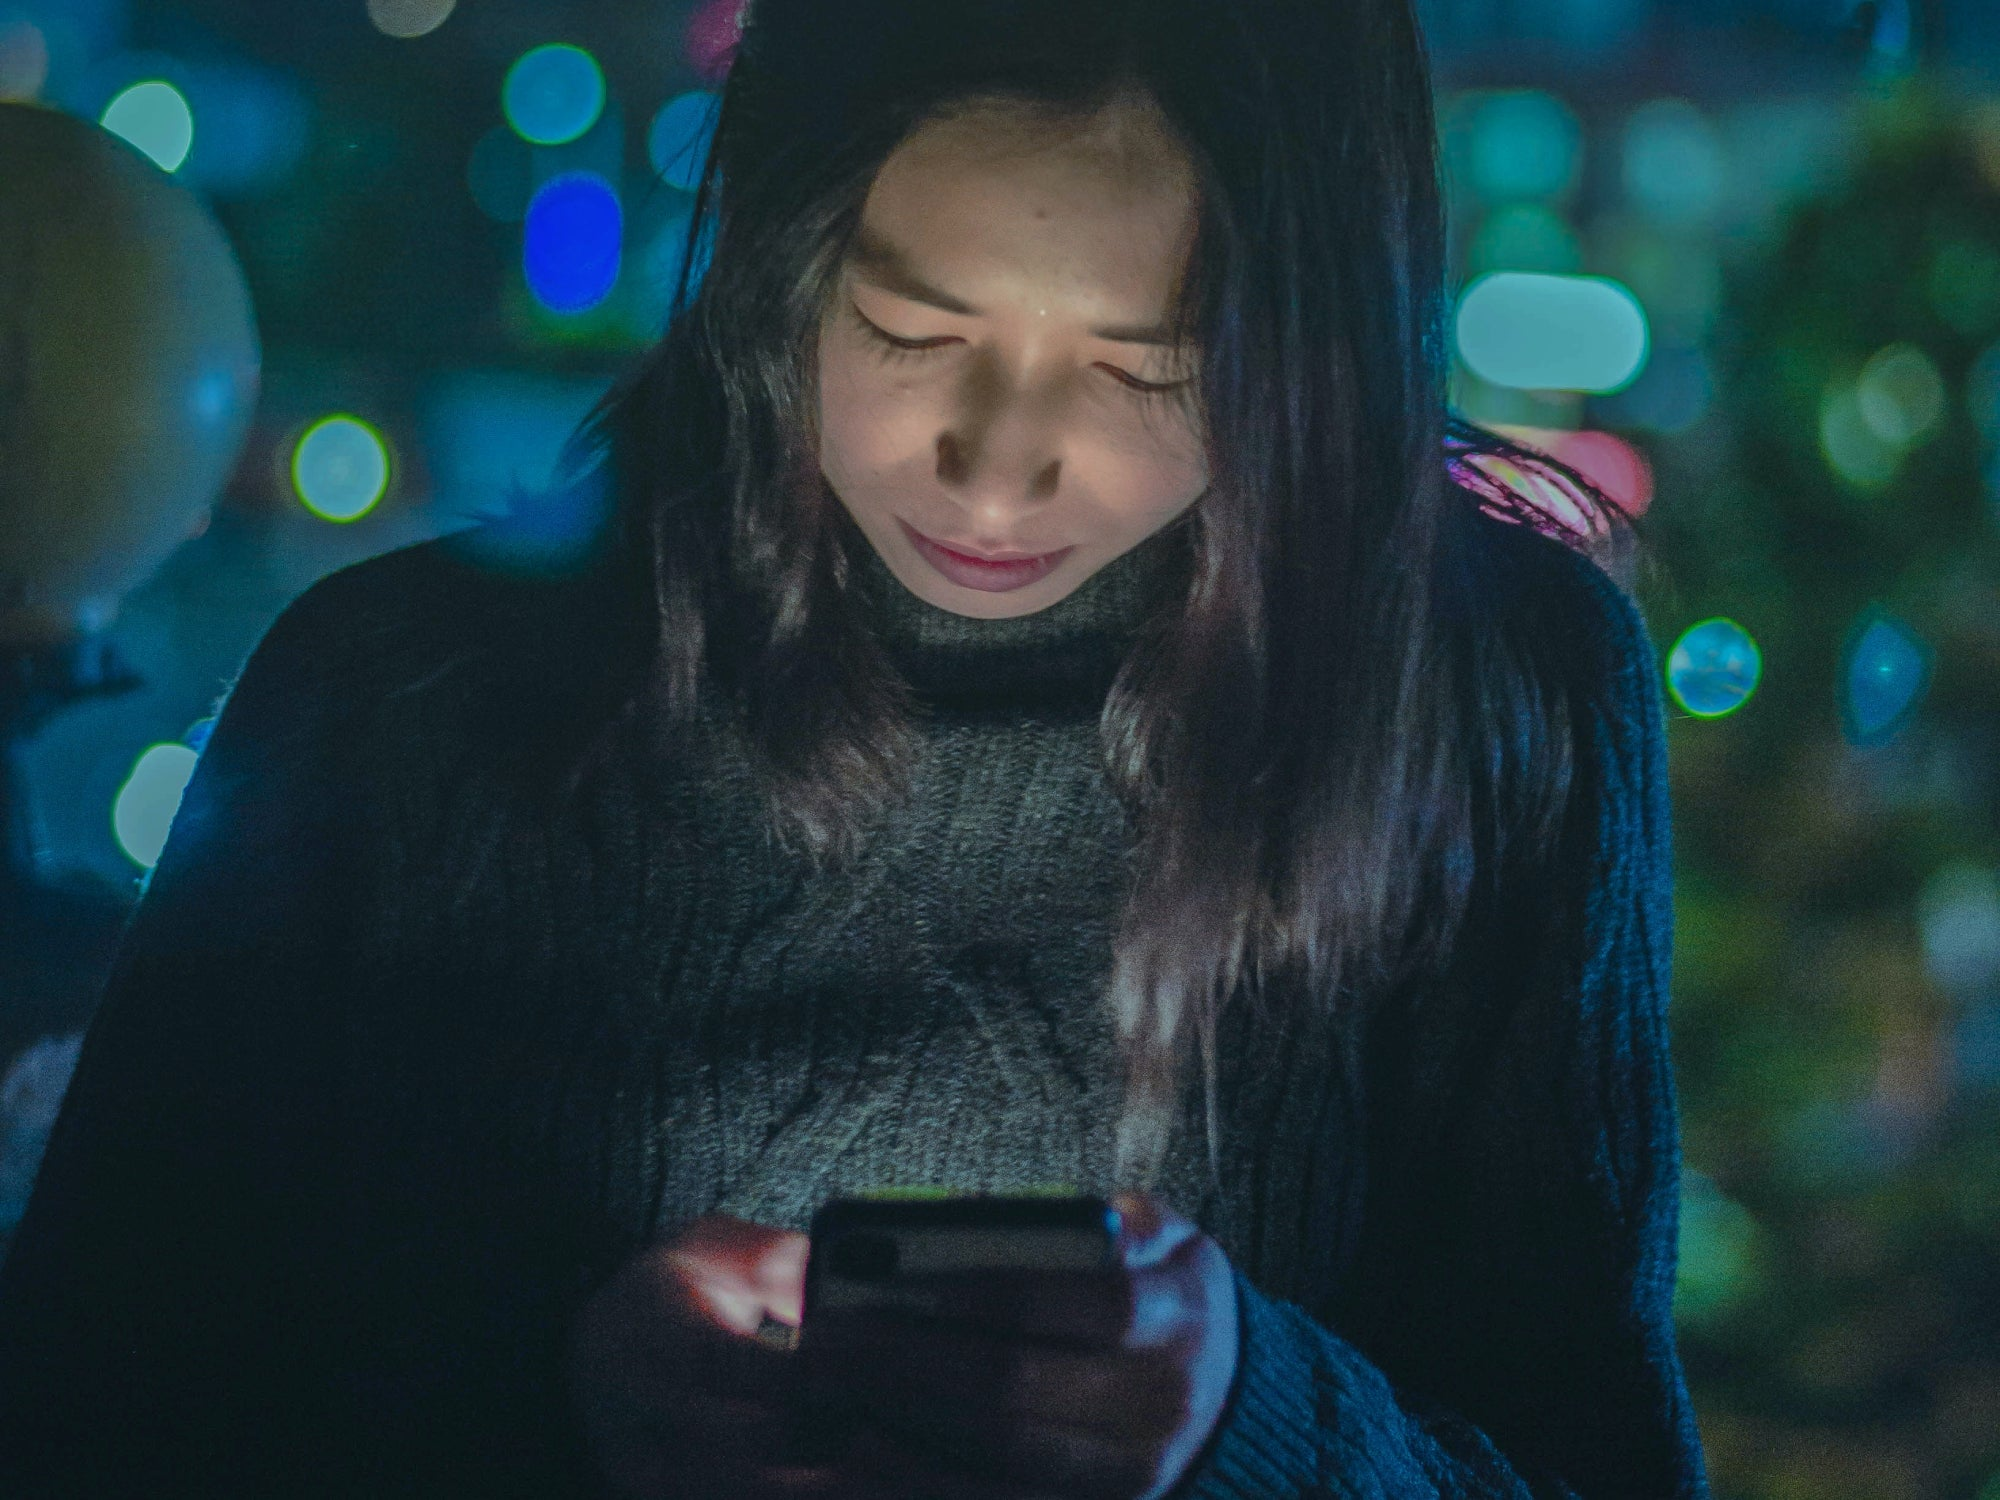 A woman looking at her phone screen at night while the screen illuminates her face